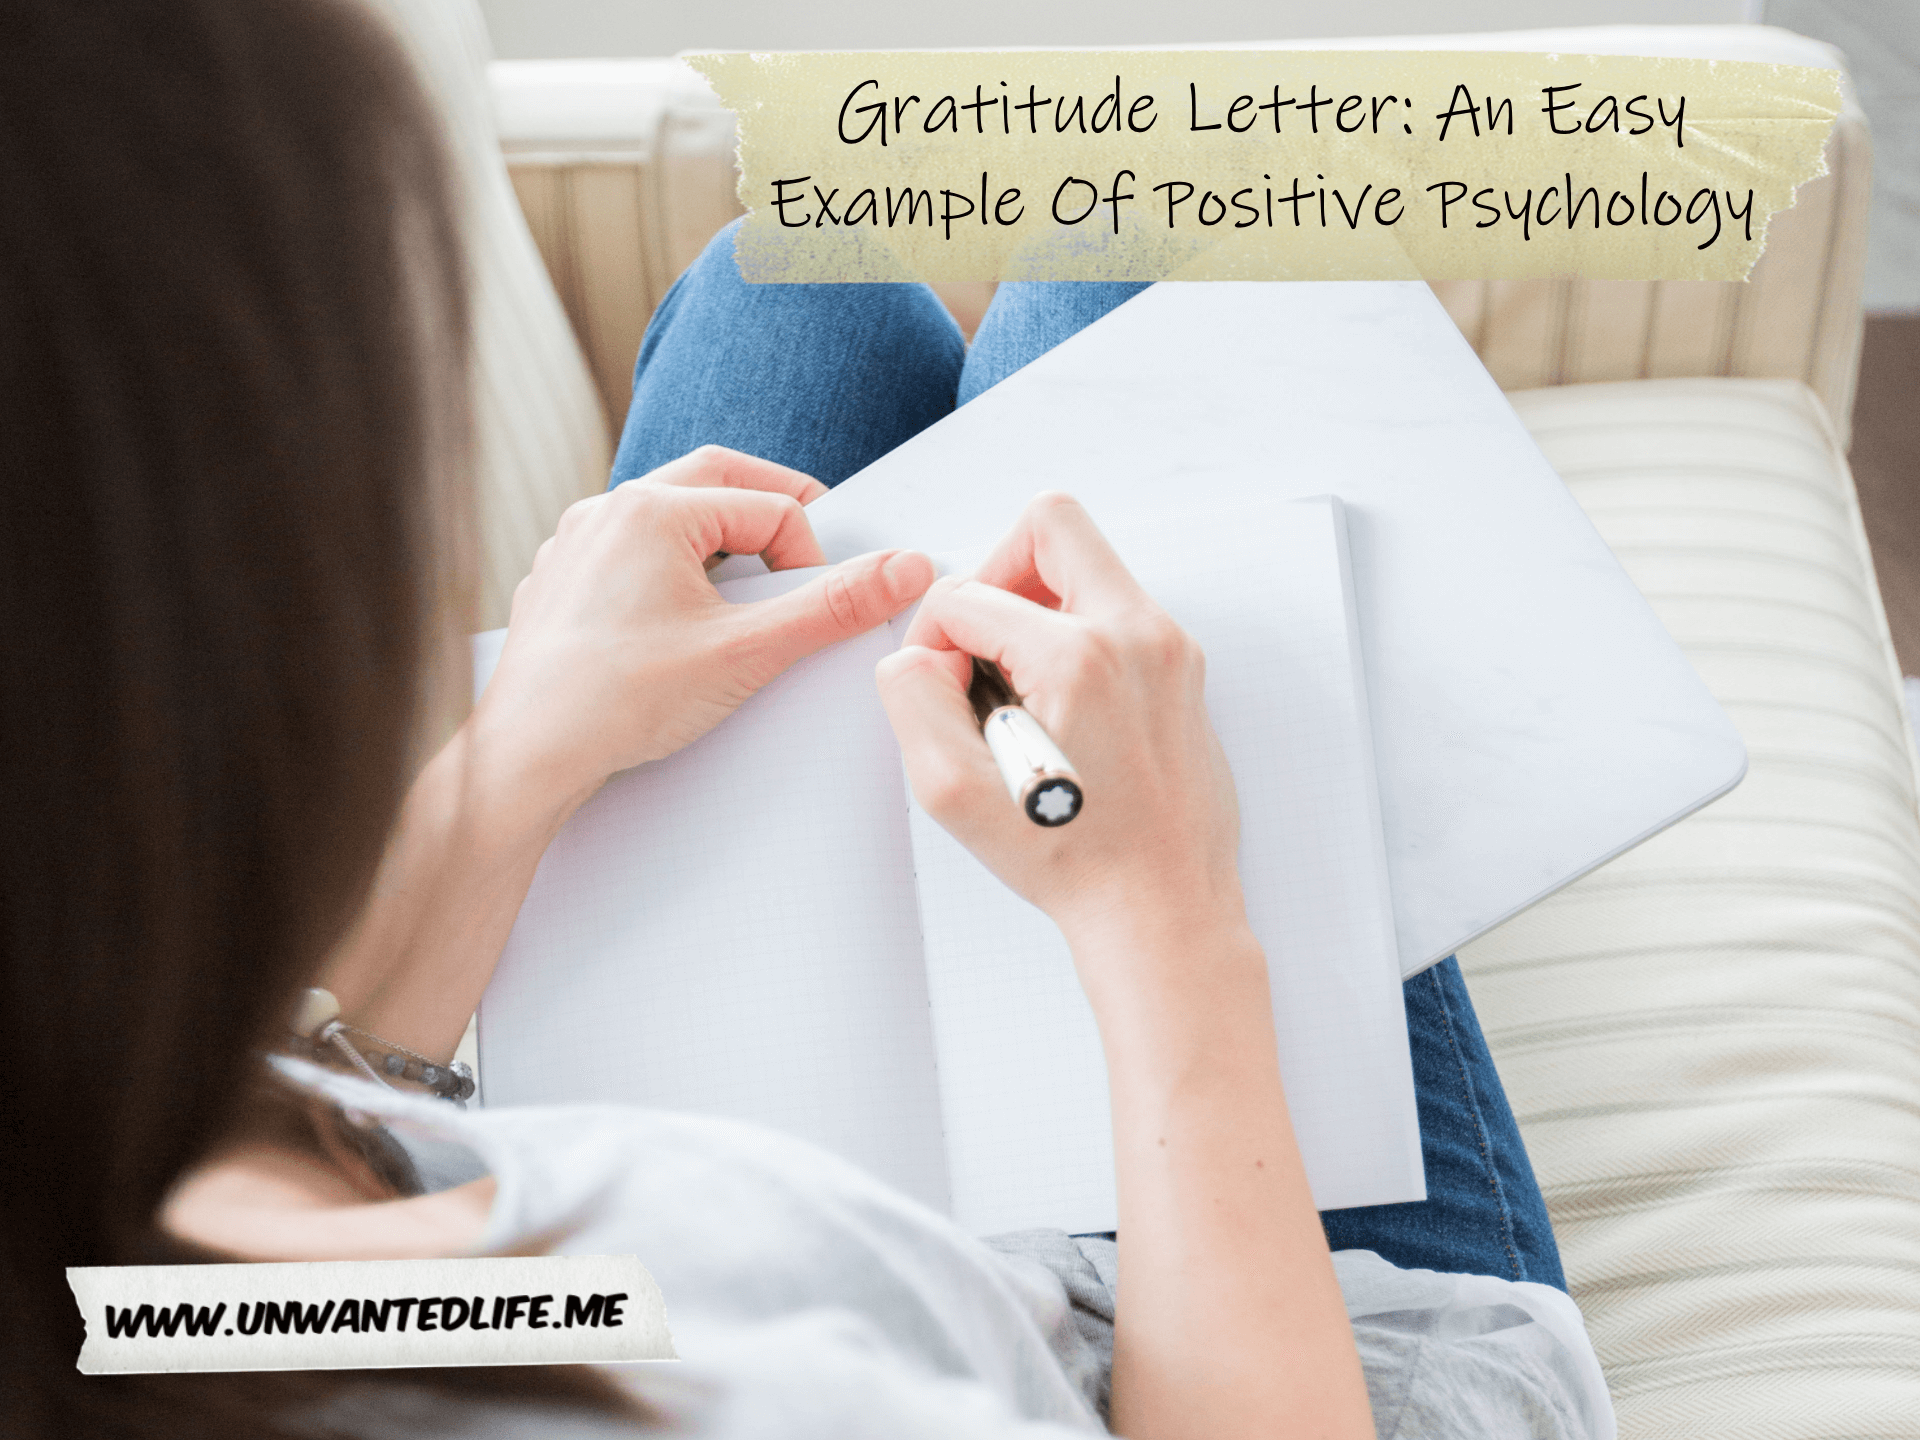 A woman laying on the sofa writing a letter. At the top right of the image is the article title - Gratitude Letter: An Easy Example Of Positive Psychology